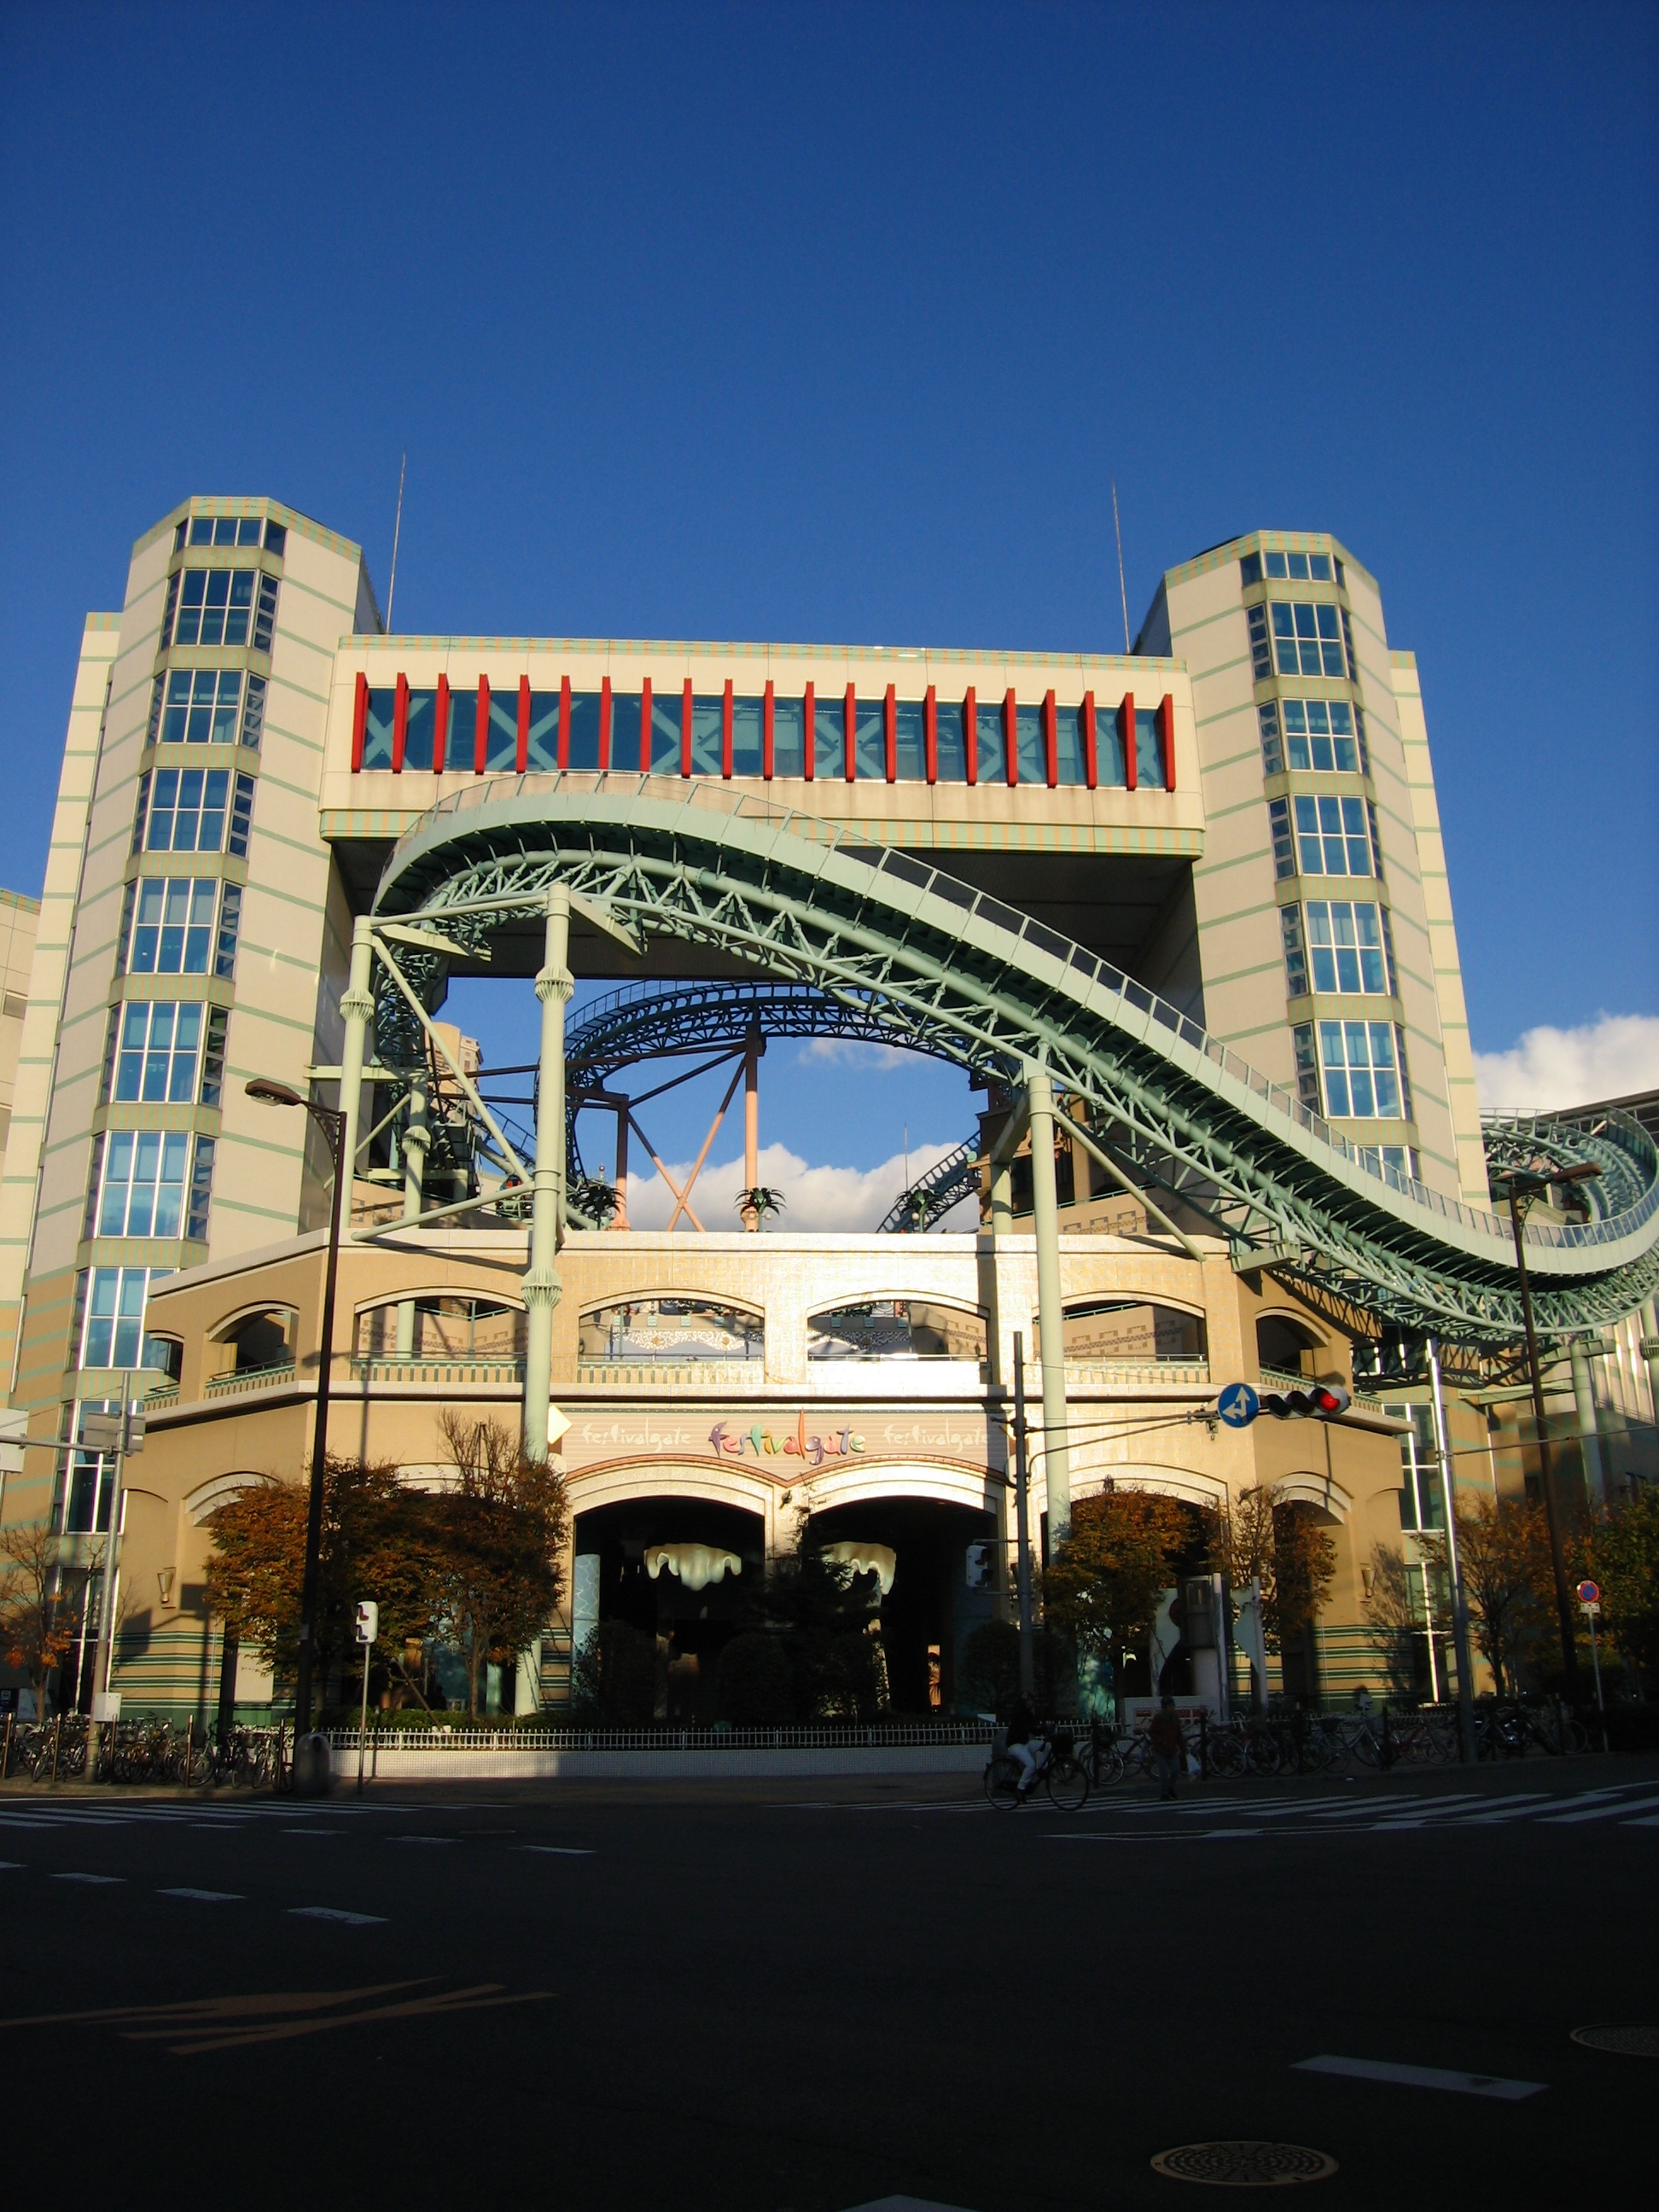 [Figure 3: The Shinsekai Festivalgate amusement park where we started the Cocoroom in 2003. (The park has since been demolished.)]